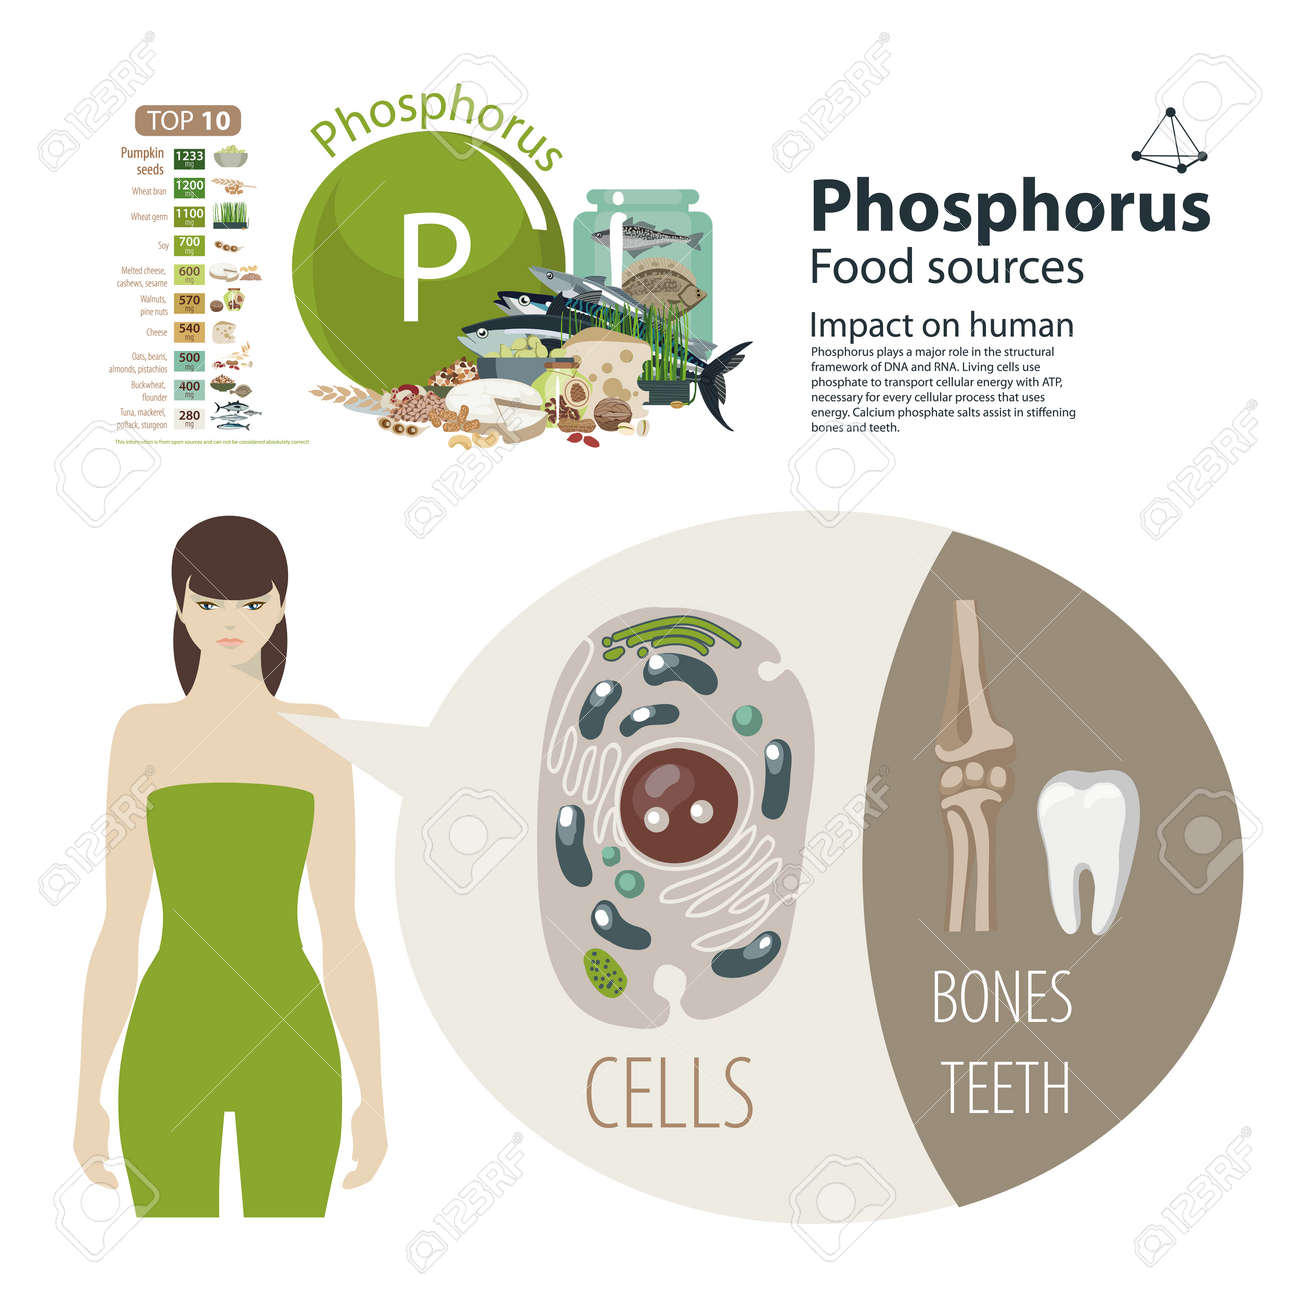 Phosphorus Food Sources For Bones And Teeth With Woman Royalty Free